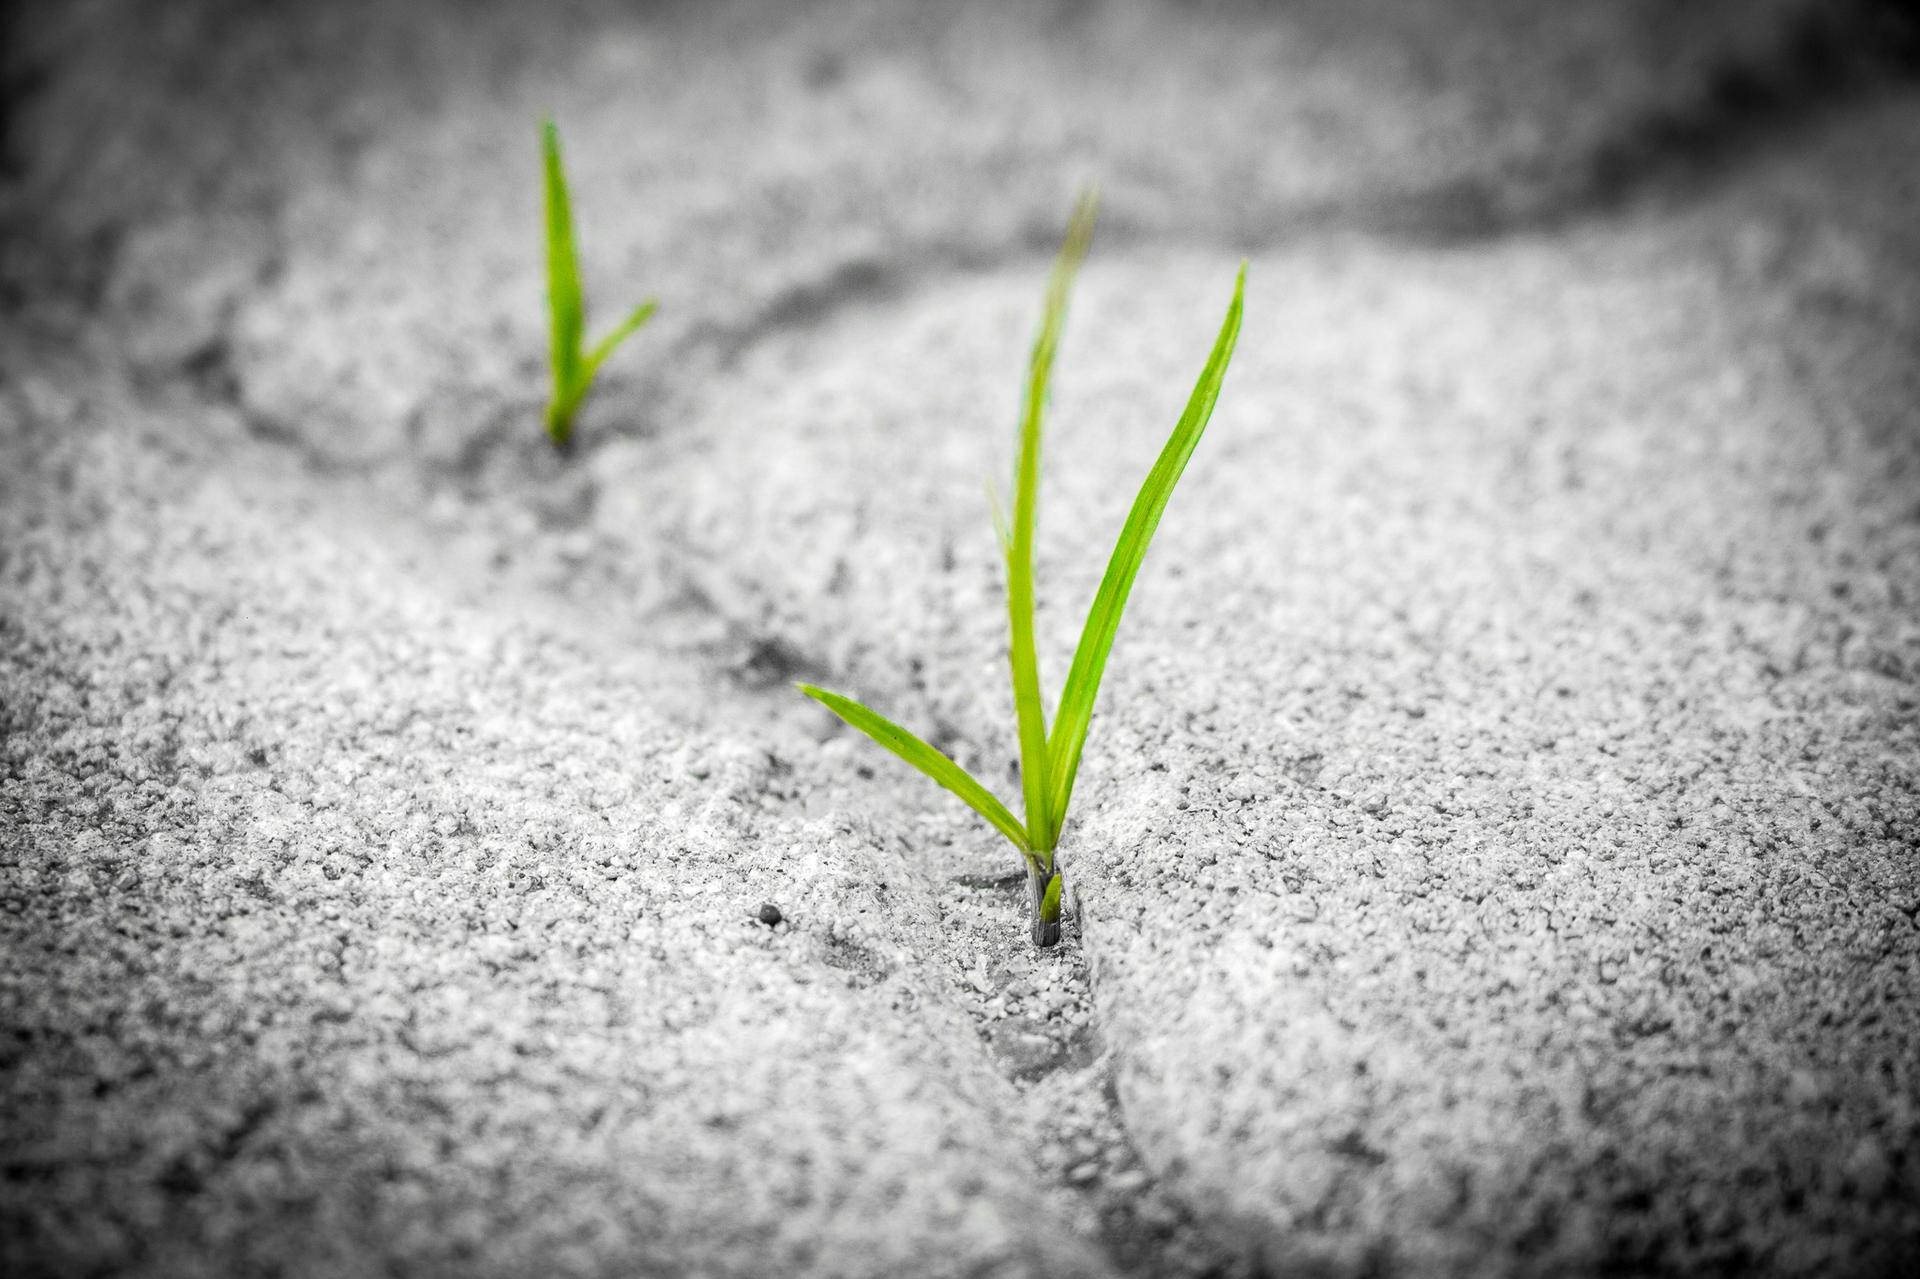 Blades of grass growing out of cracks in a sidewalk - reducing stress and building resilience - Healing Arts Institute